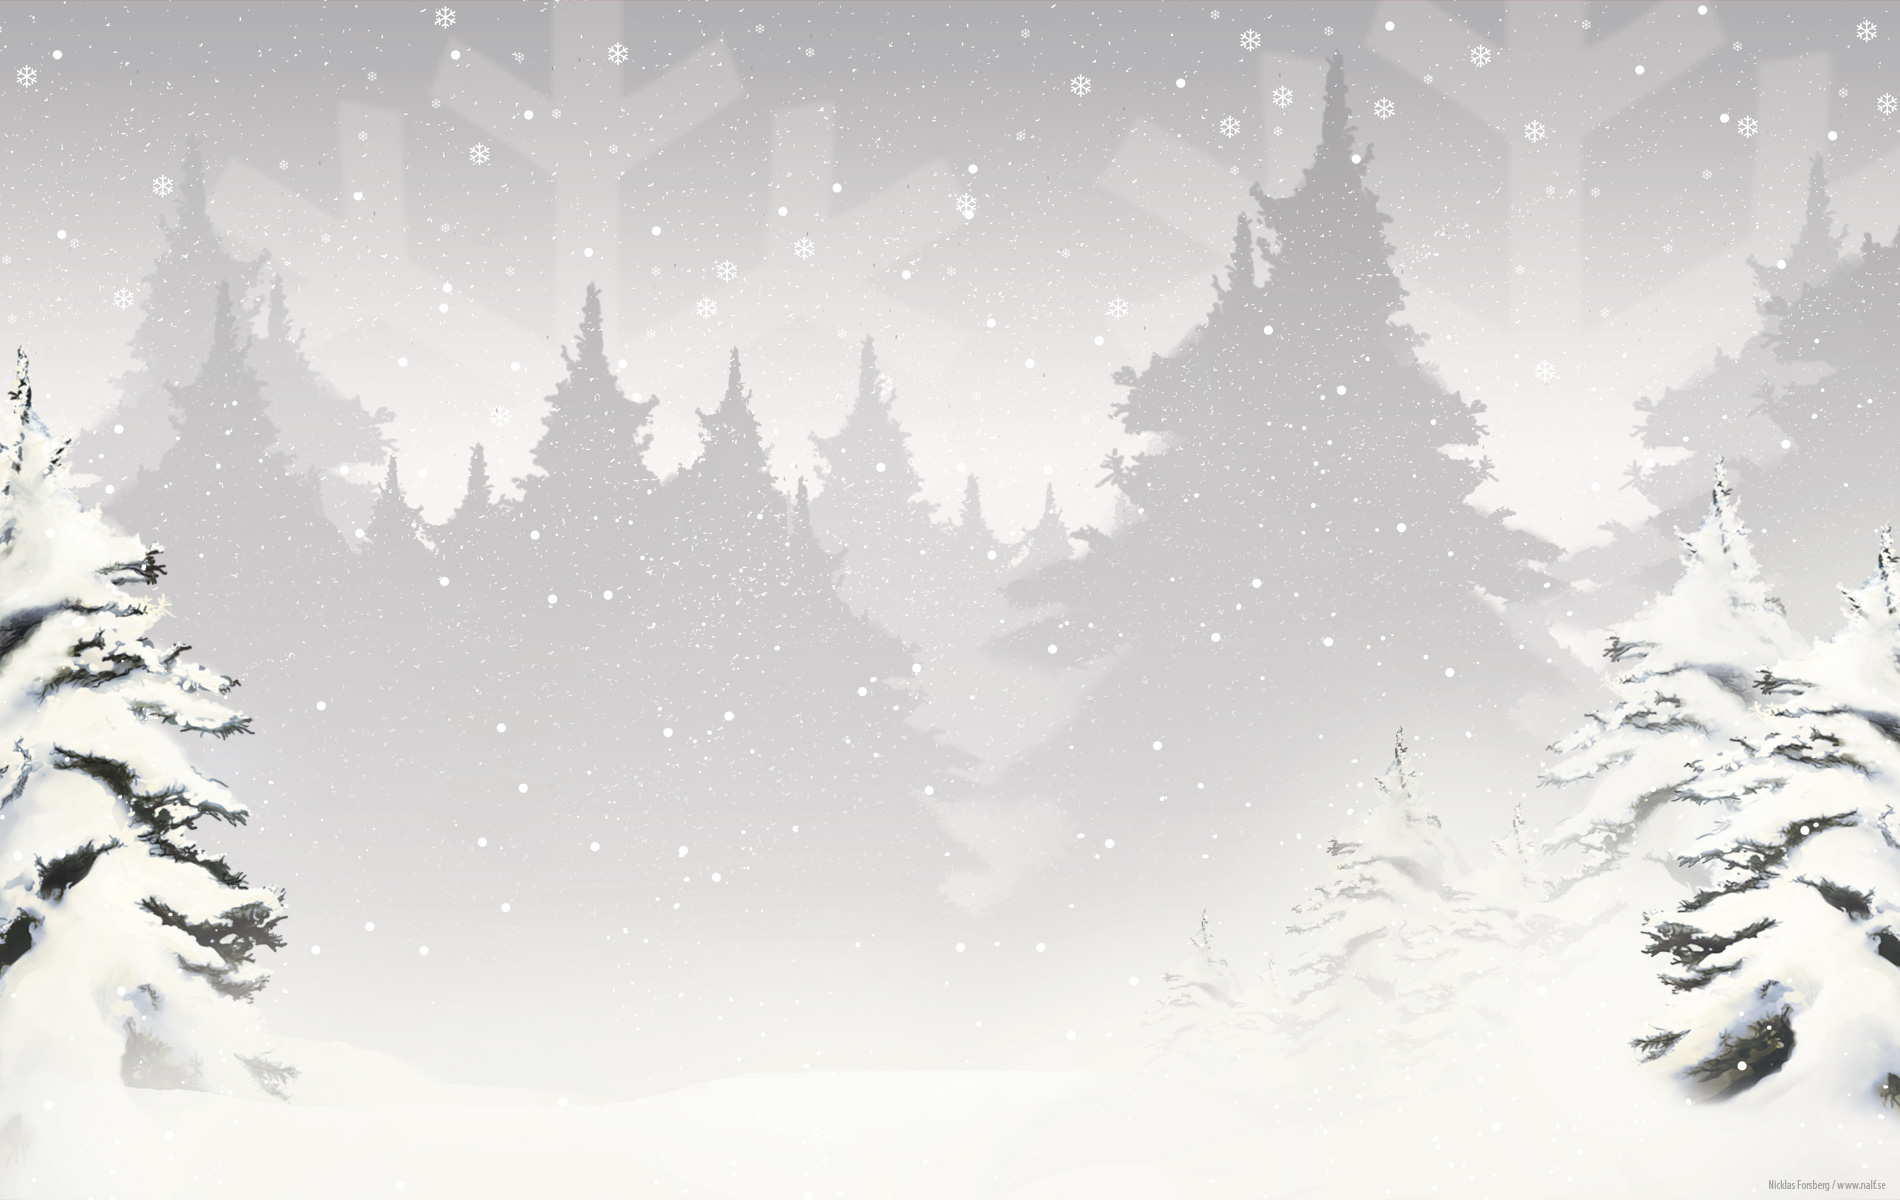 Xmas Wallpaper 08 - White by bm